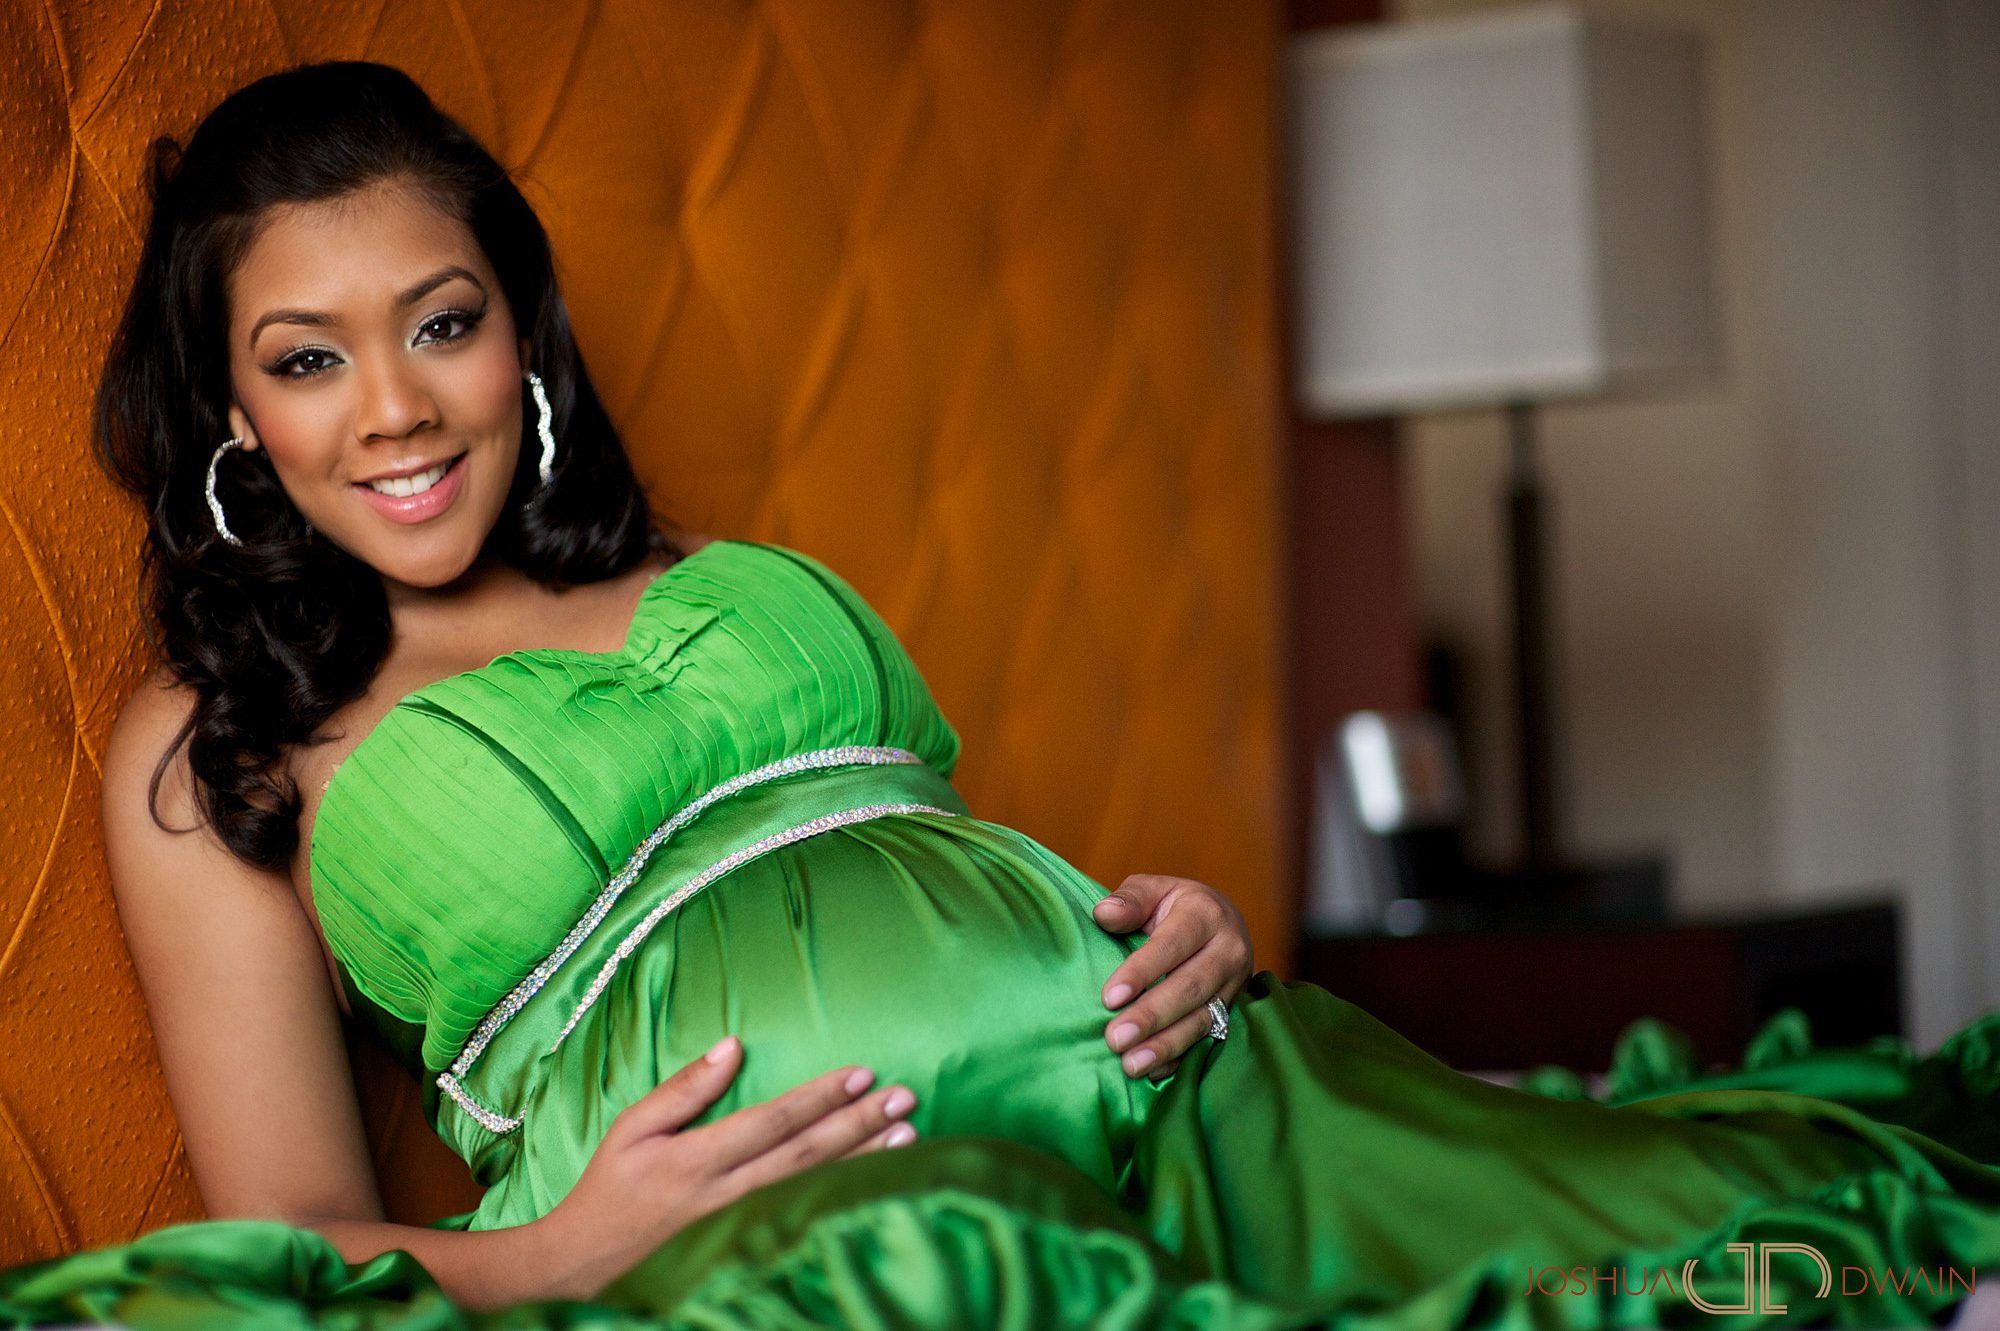 khadeen-ellis-001-new-york-city-maternity-photographer-joshua-dwain-2011-03-18_KD_163